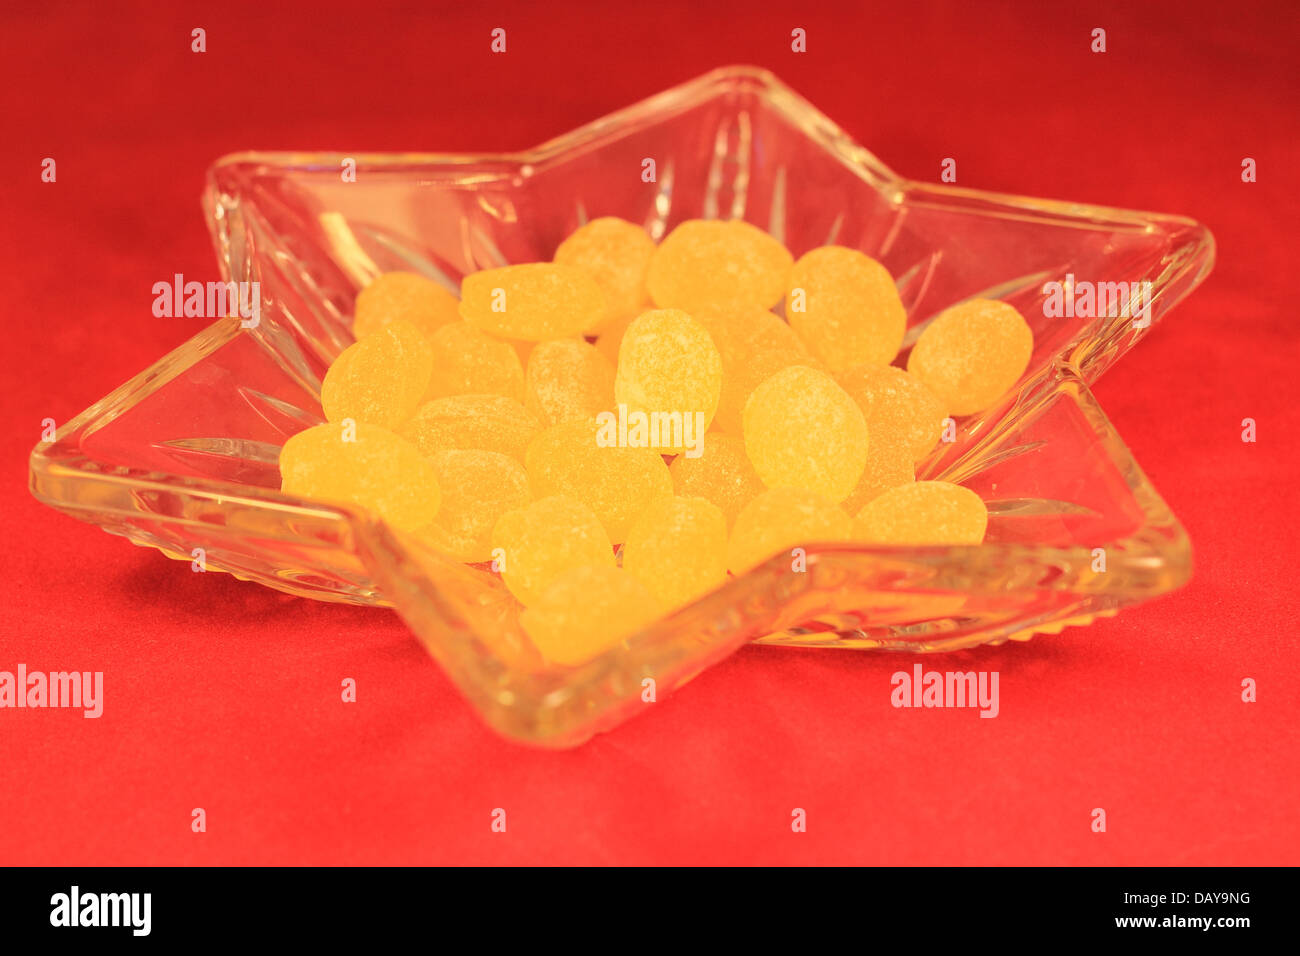 Lemon drops in a candy dish on a red background - Stock Image